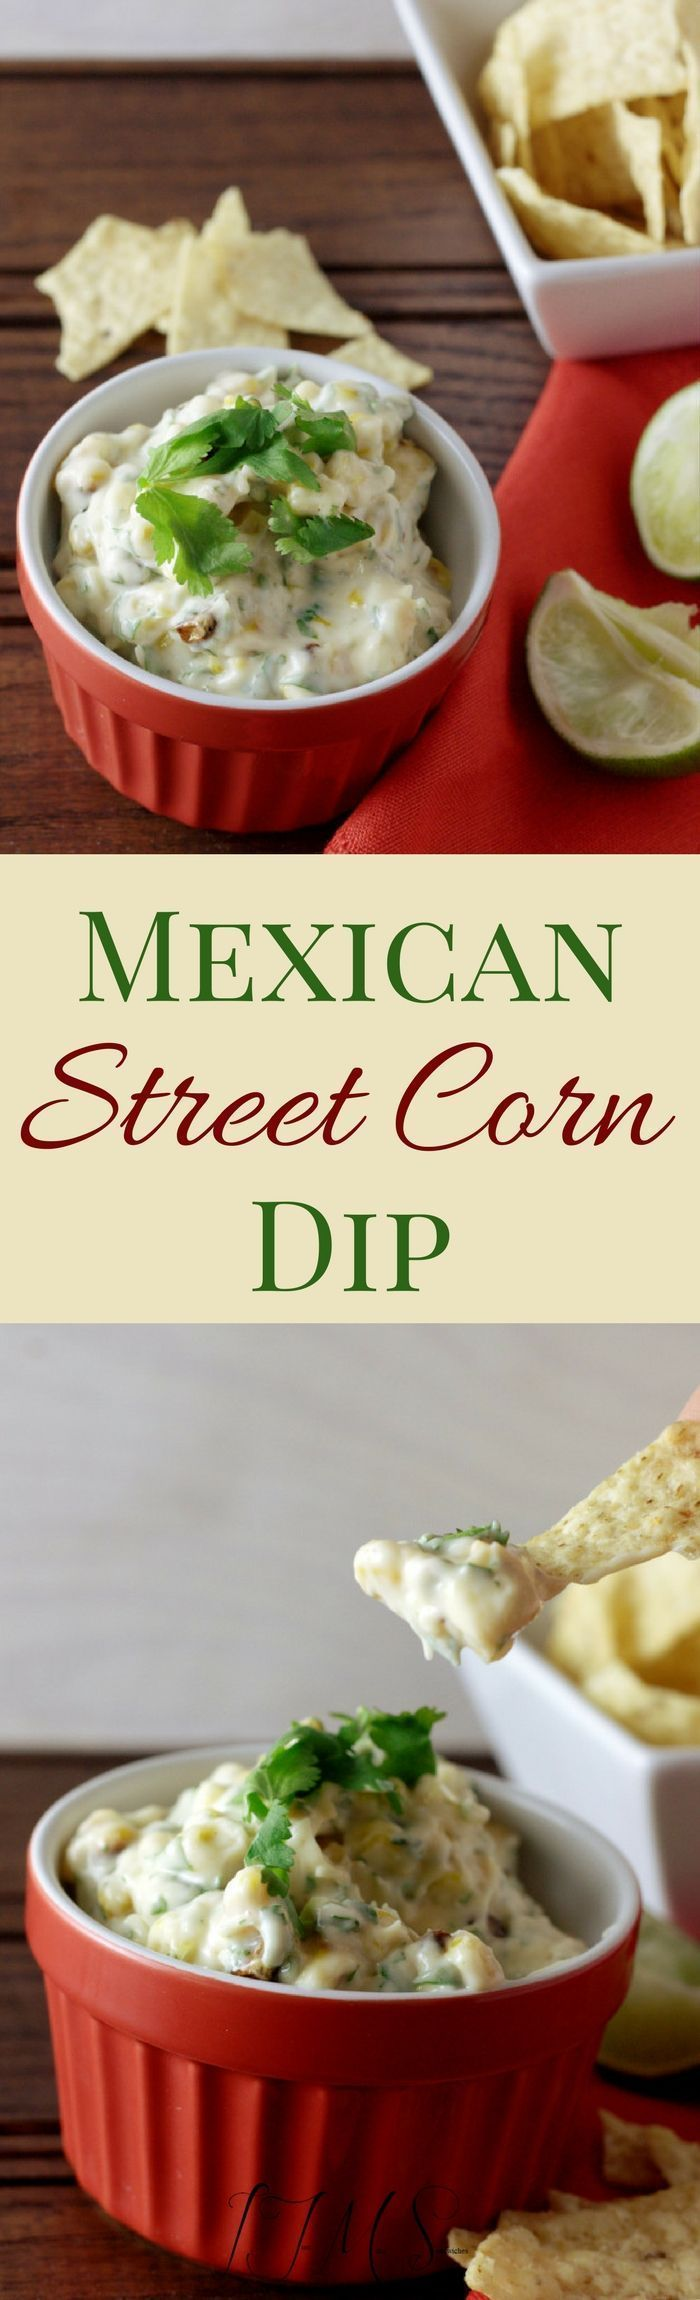 This Mexican Street Corn Dip is perfect for your Cinco de Mayo celebrations this year!